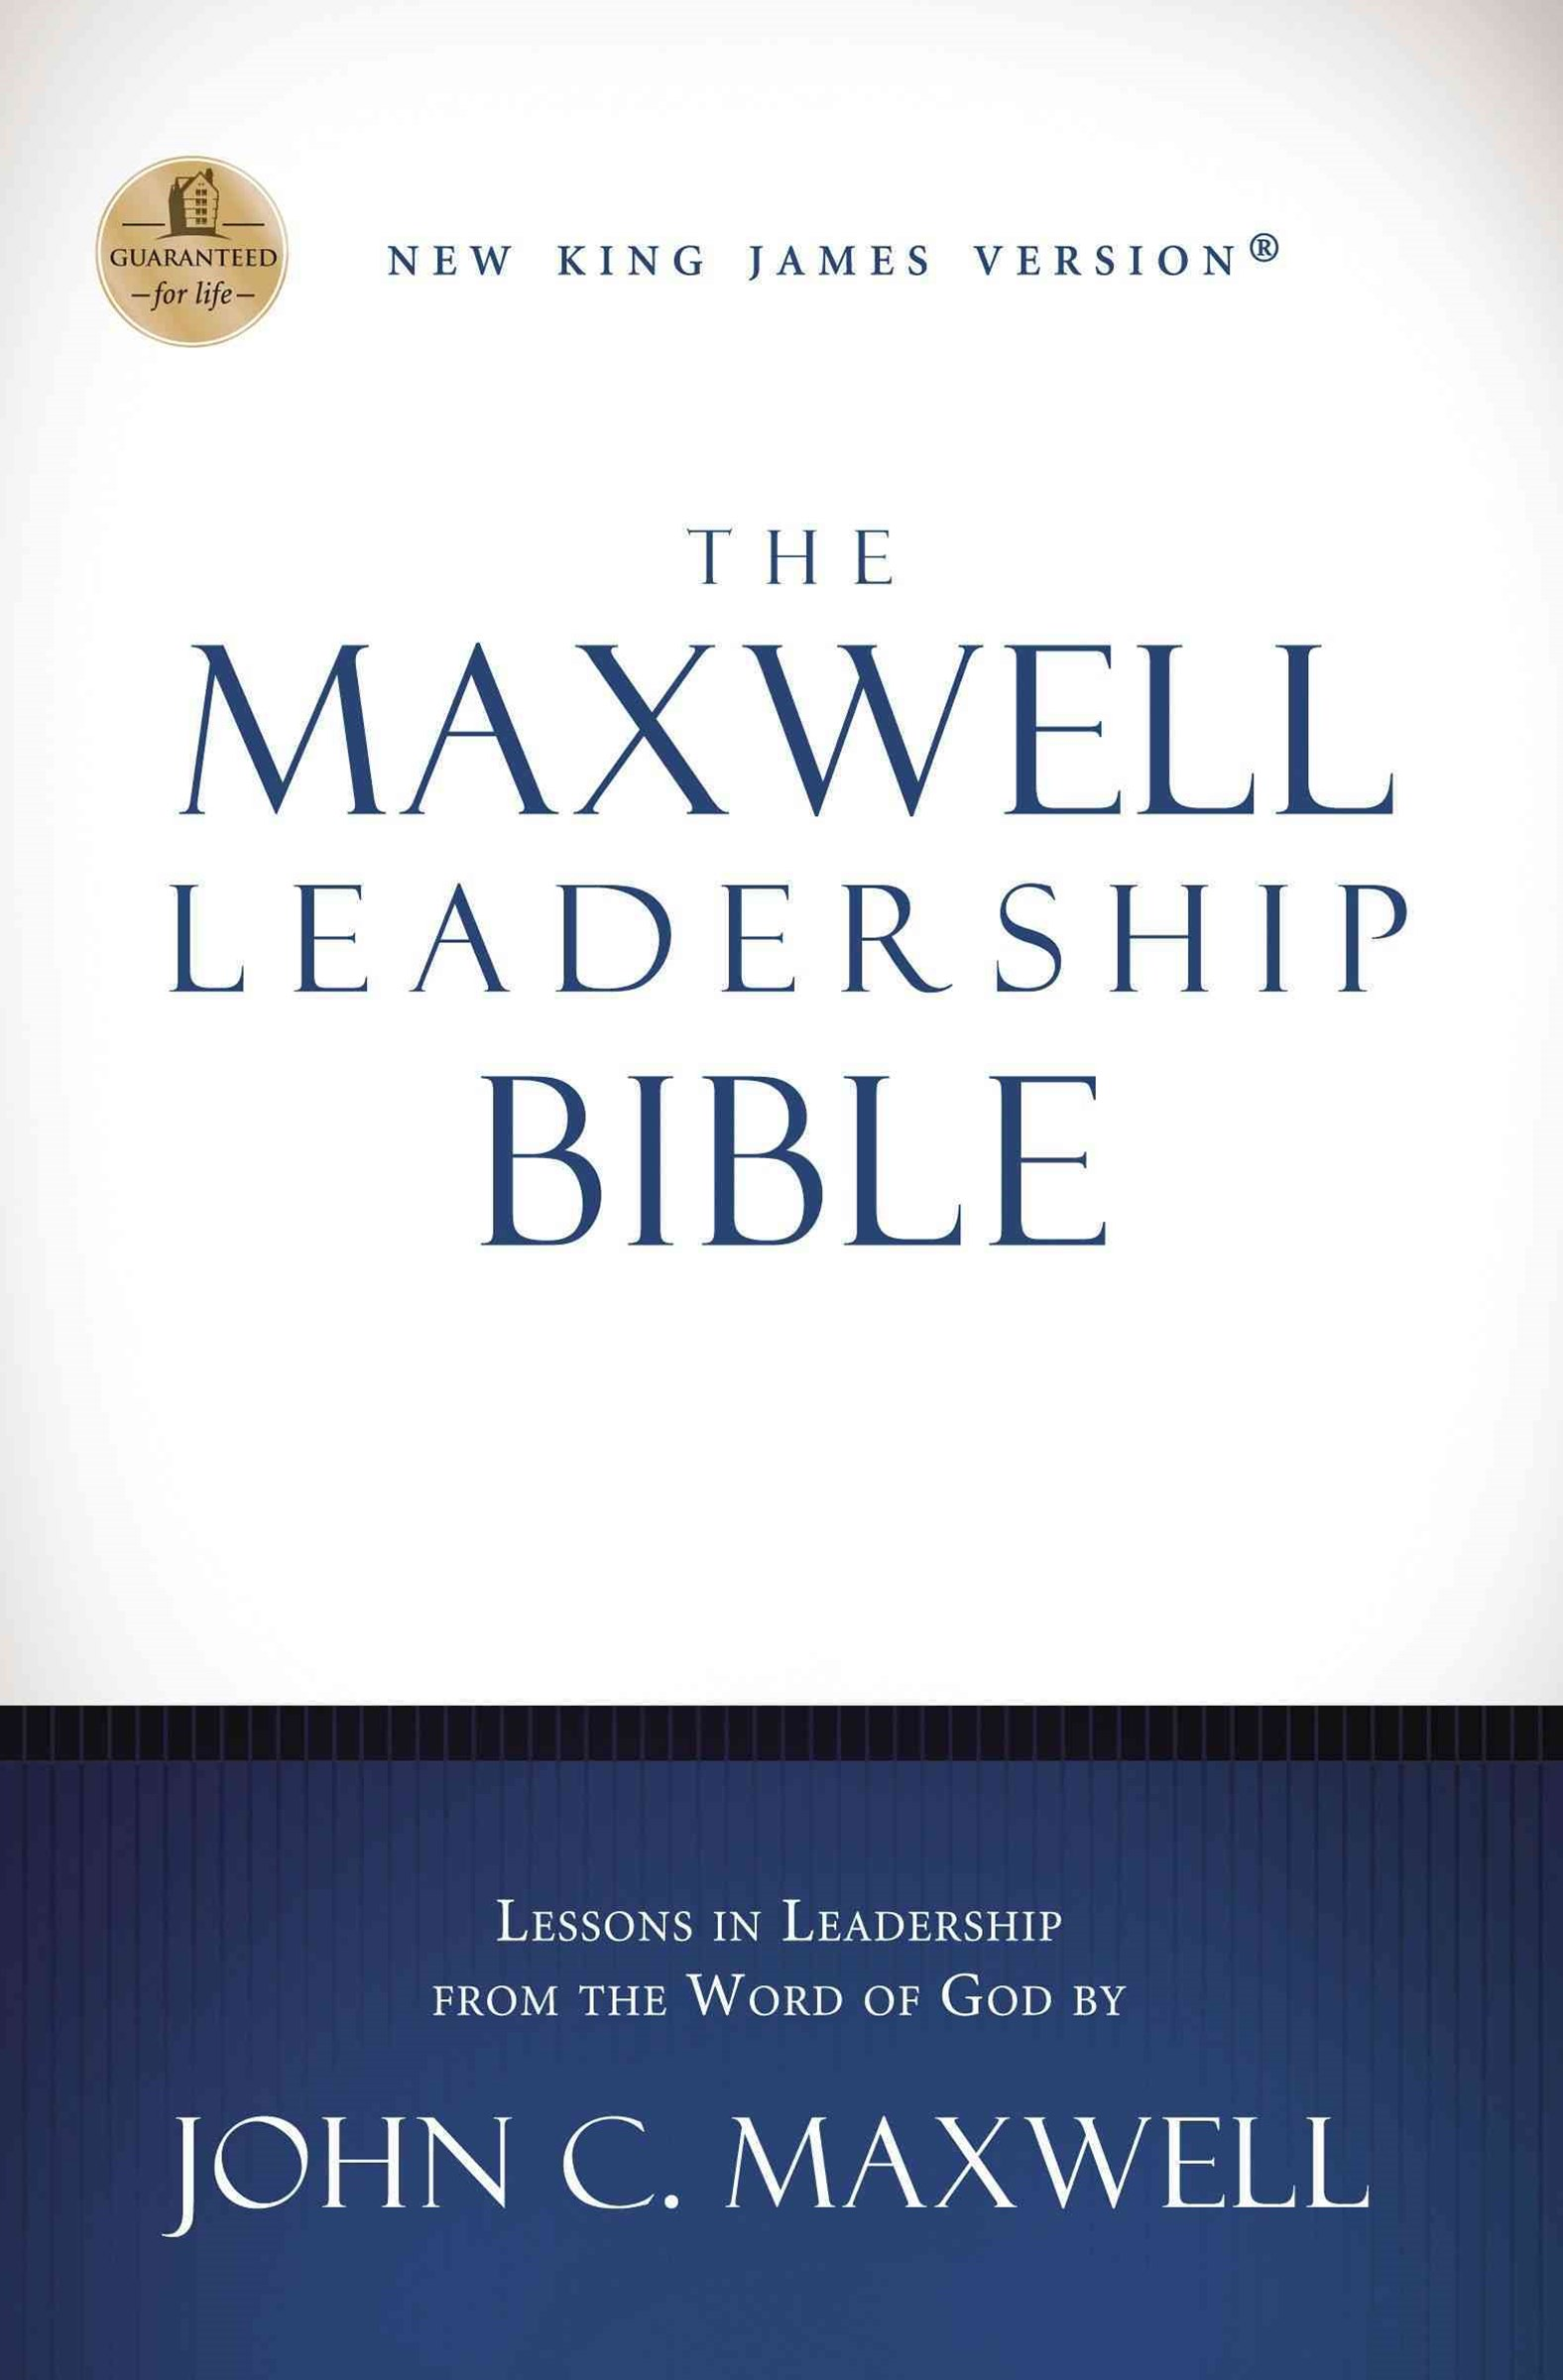 NKJV, the Maxwell Leadership Bible